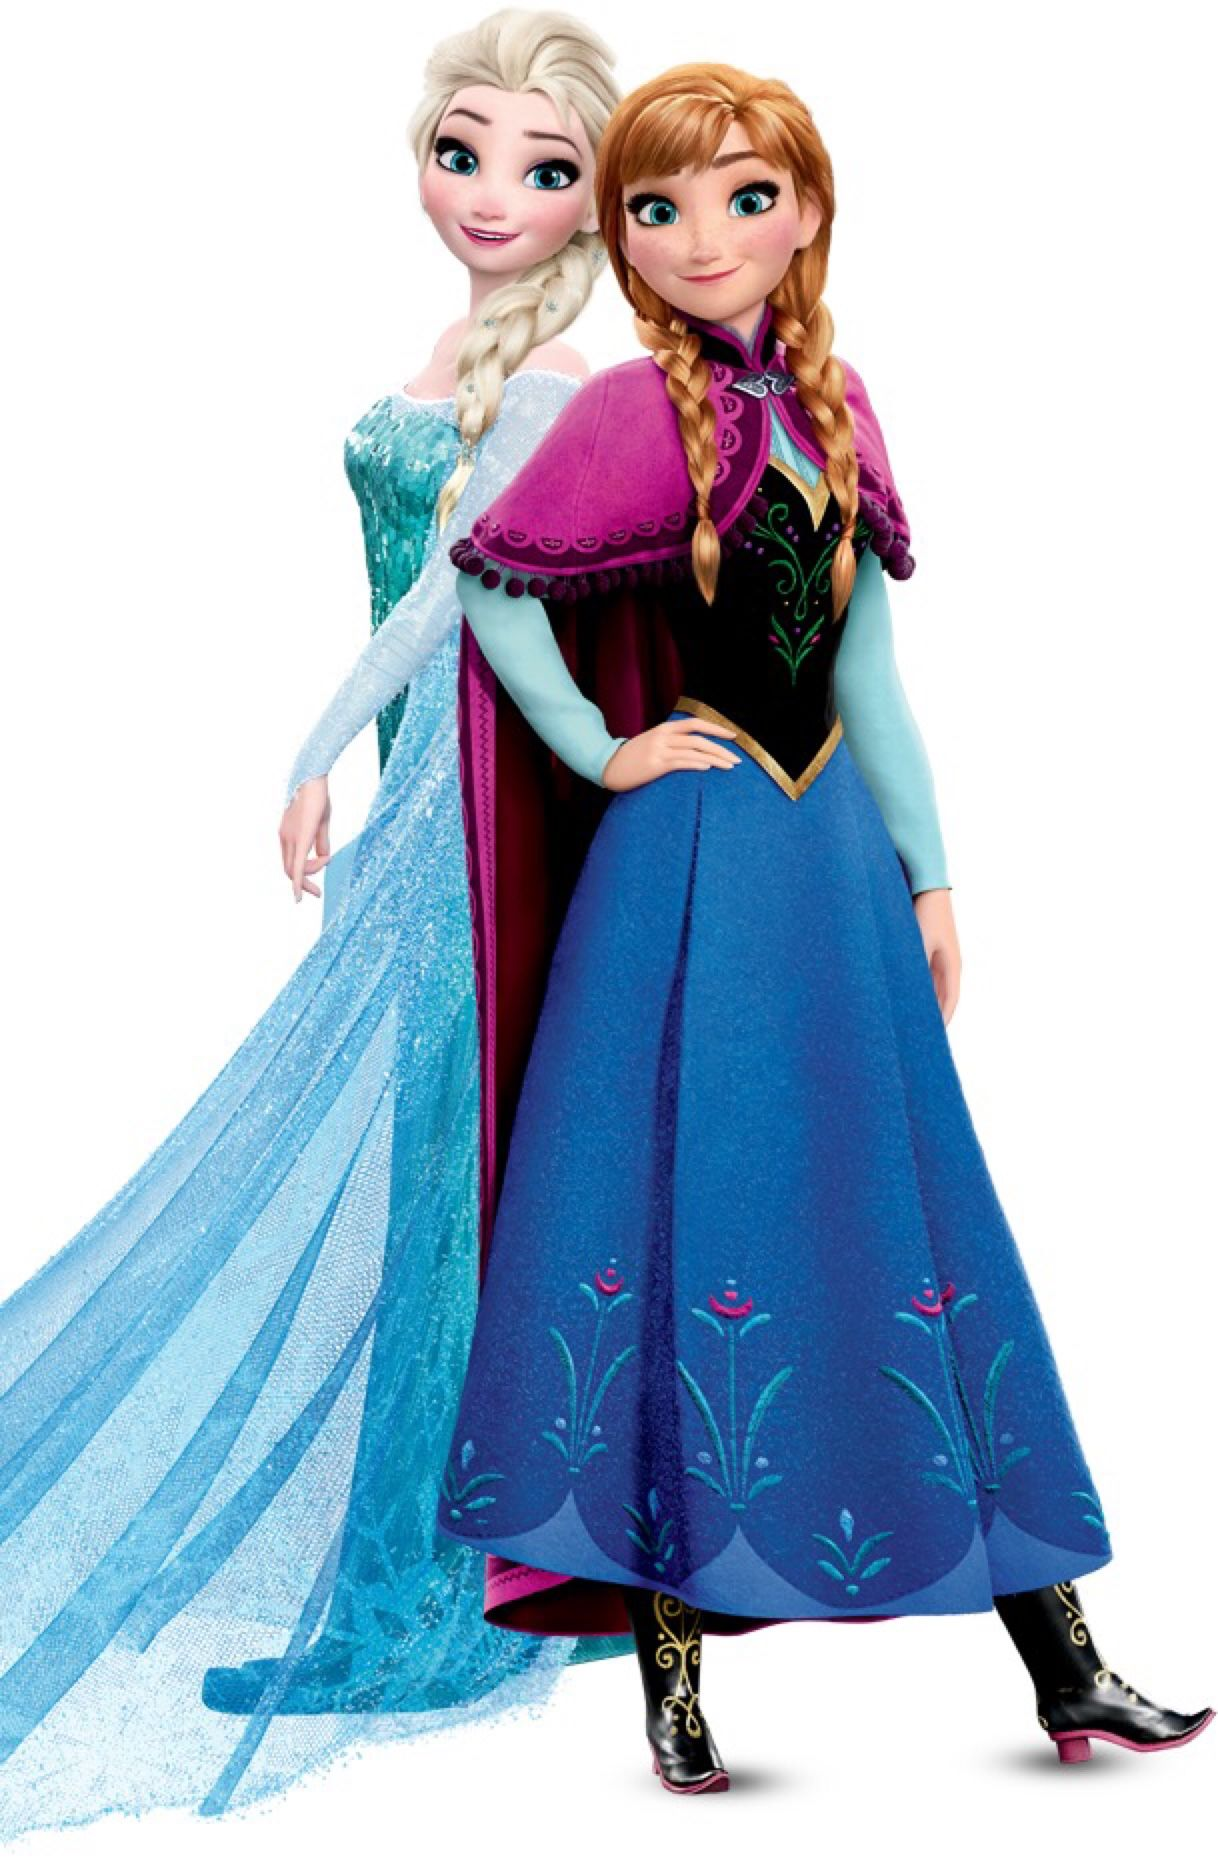 Princess anna and queen elsa of arendelle disney 39 s - Princesse frozen ...